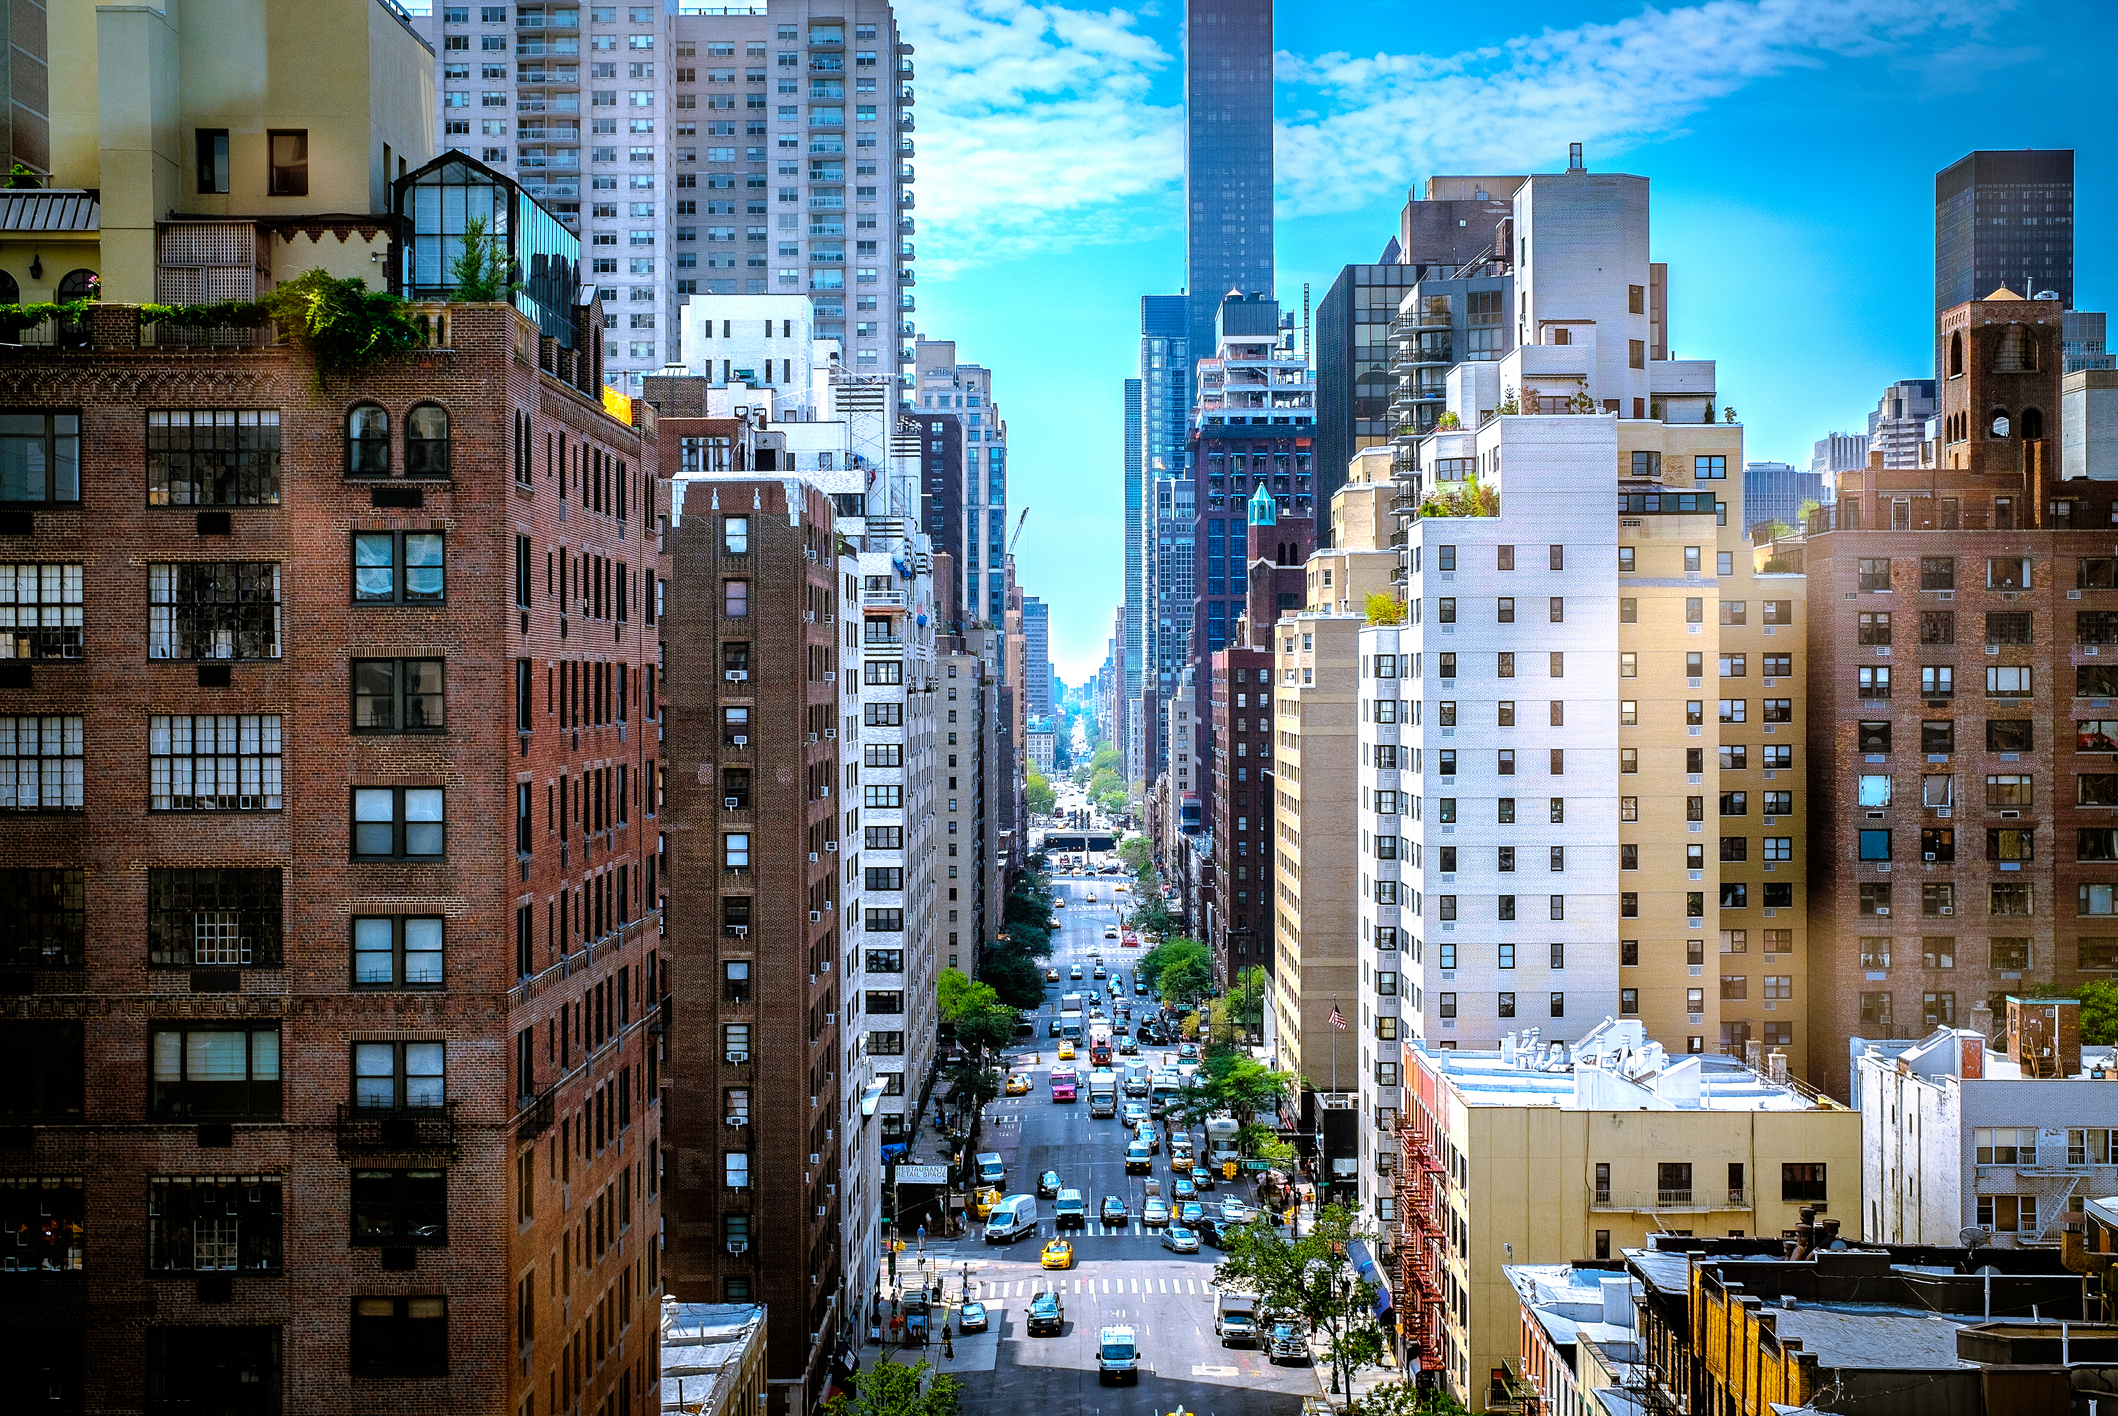 A colorful street canyon in New York City. The blue sky along with some clouds build a nice background for the busy street.